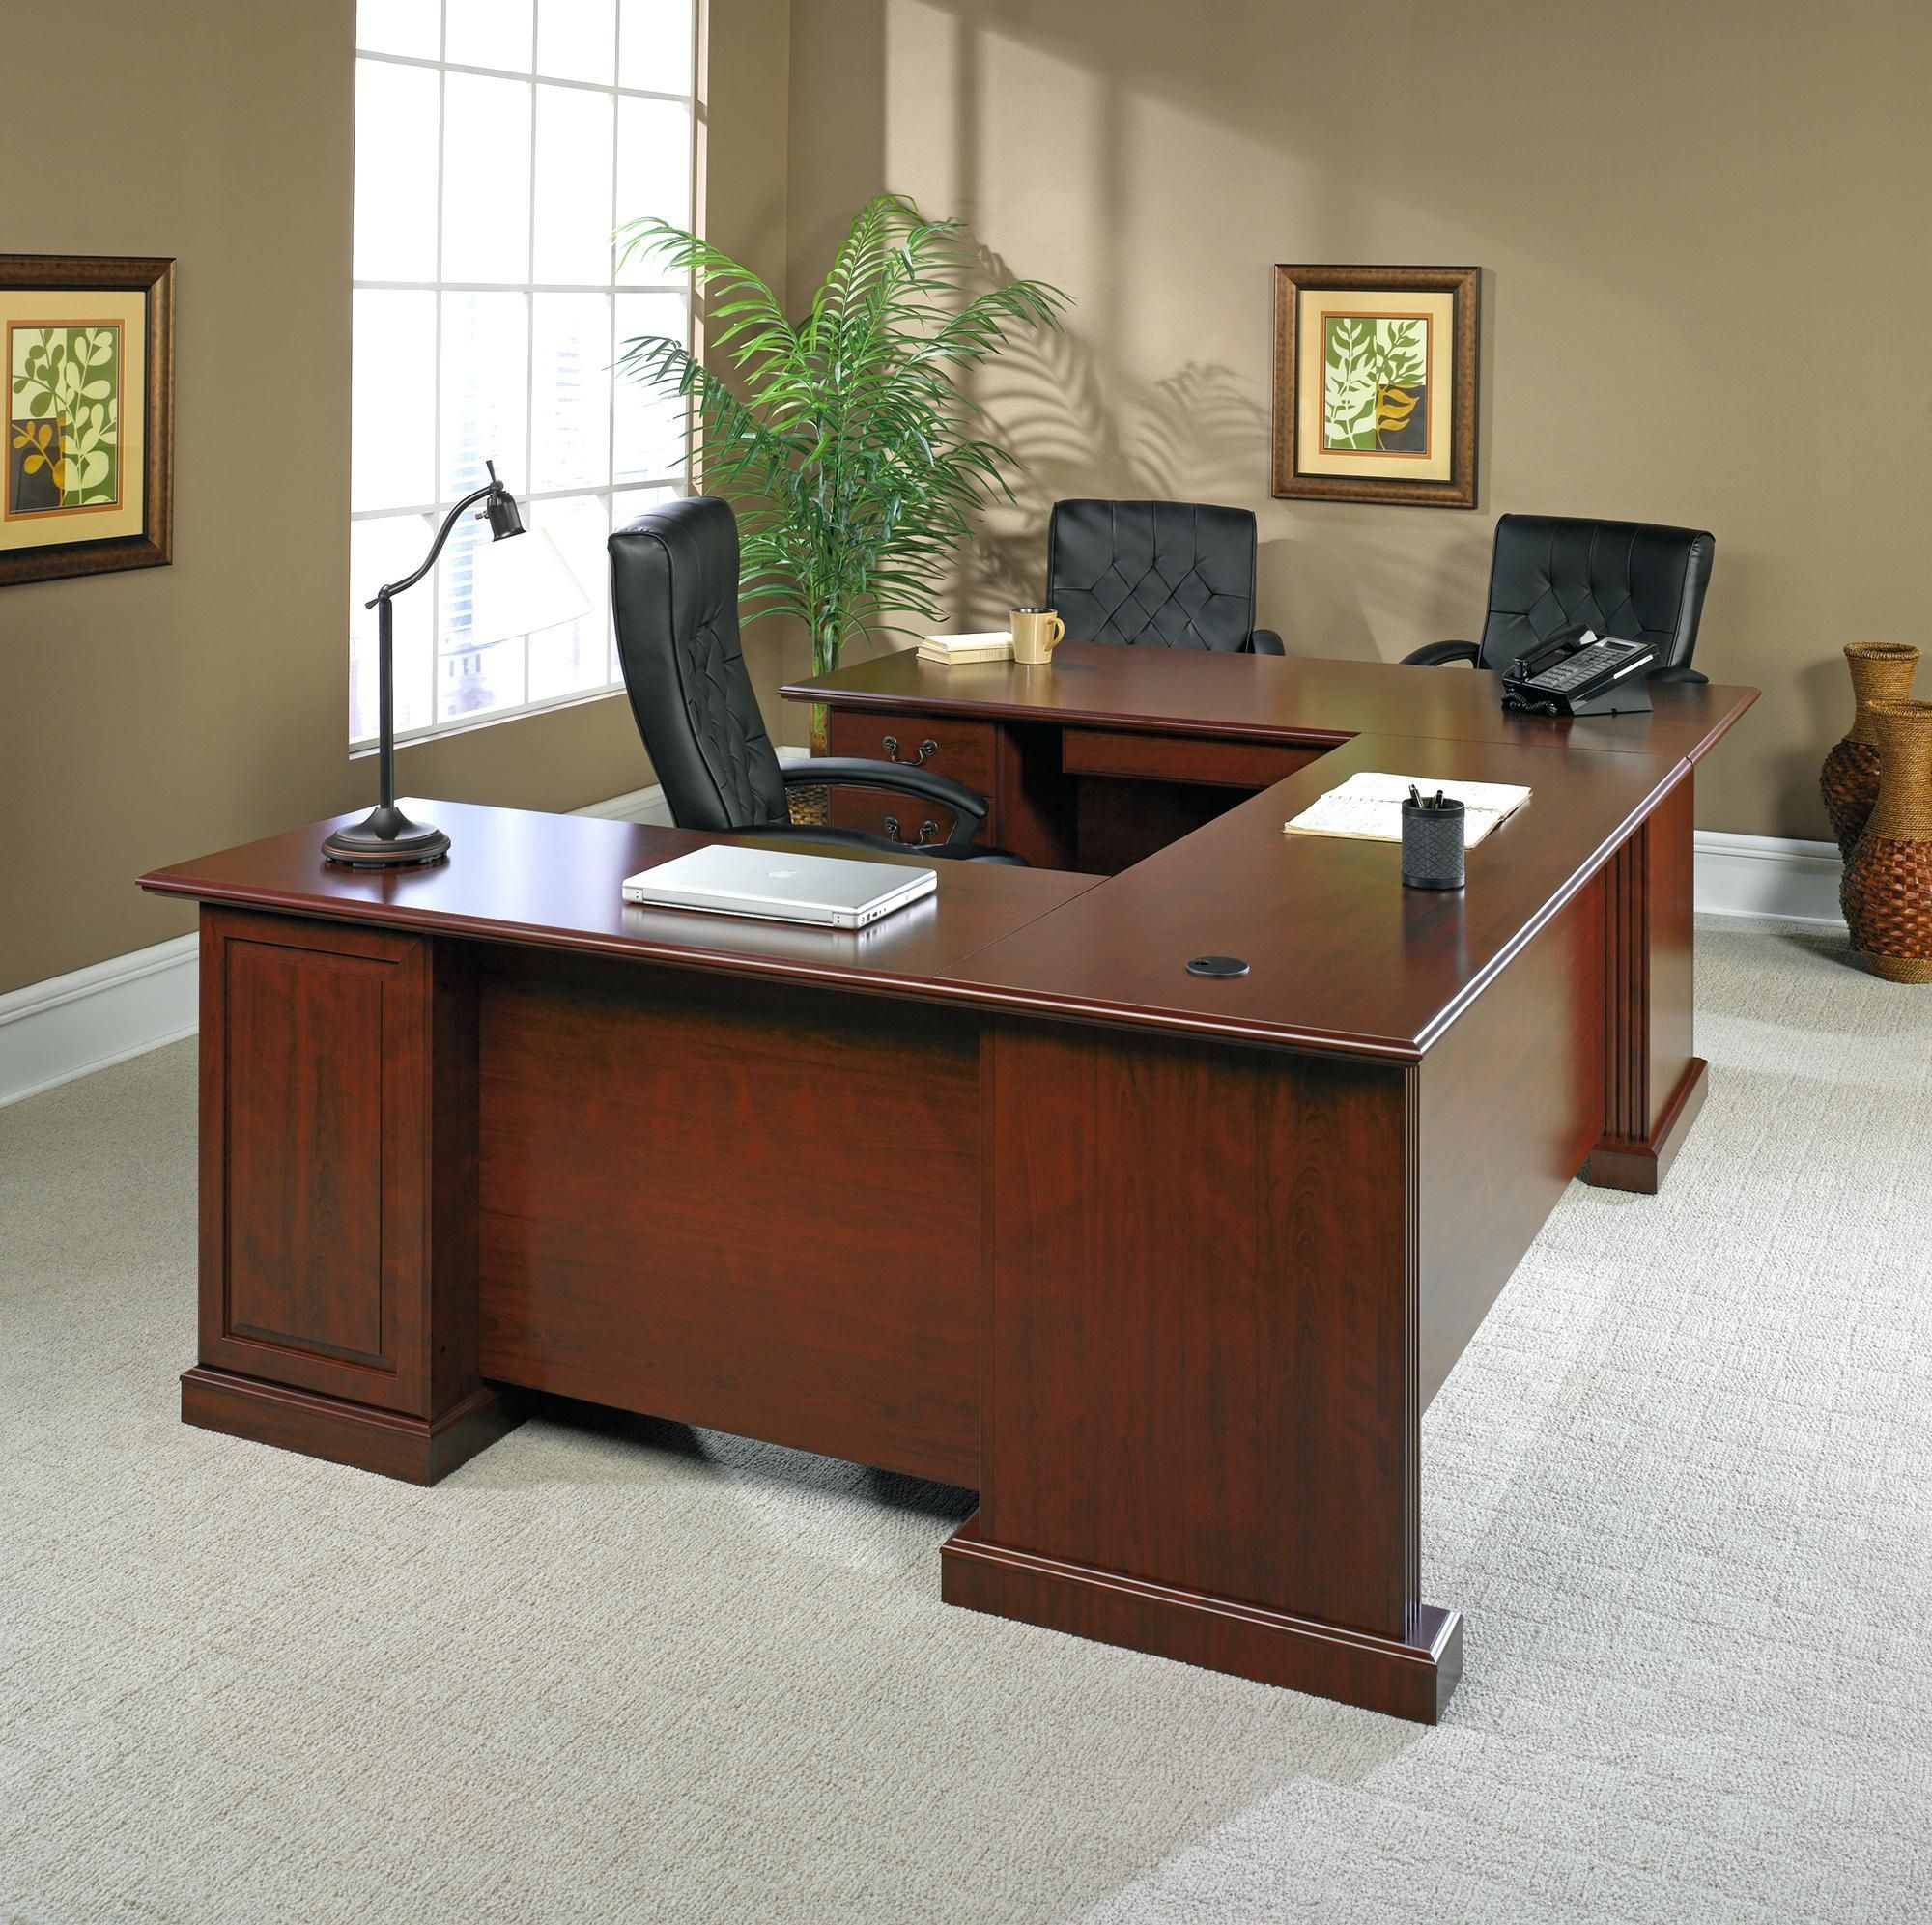 Mobilier De Bureau Professionnel Office Depot Executive Desks Office Depot Professionalofficedesigns Nar Cité